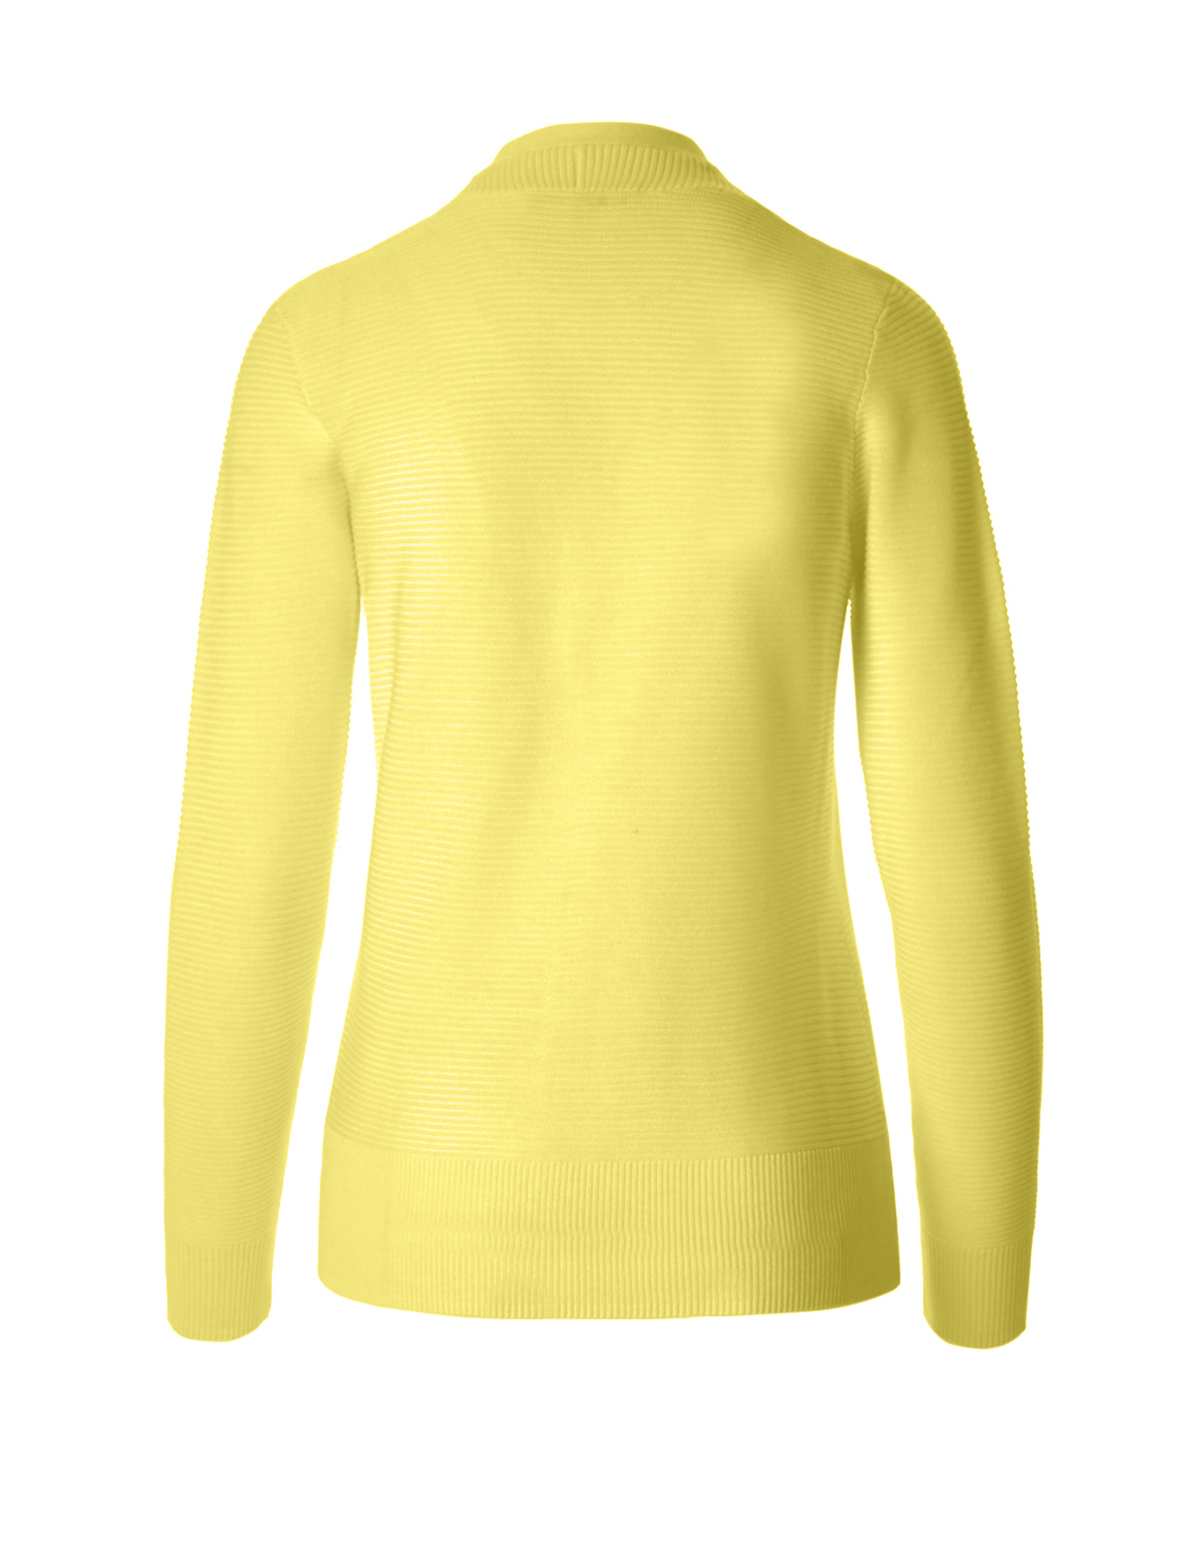 yellow sweater Women's sweaters : free shipping on orders over $45 remain warm and cozy in any weather with sweaters from overstockcom your online women's clothing store get 5% in rewards with club o.